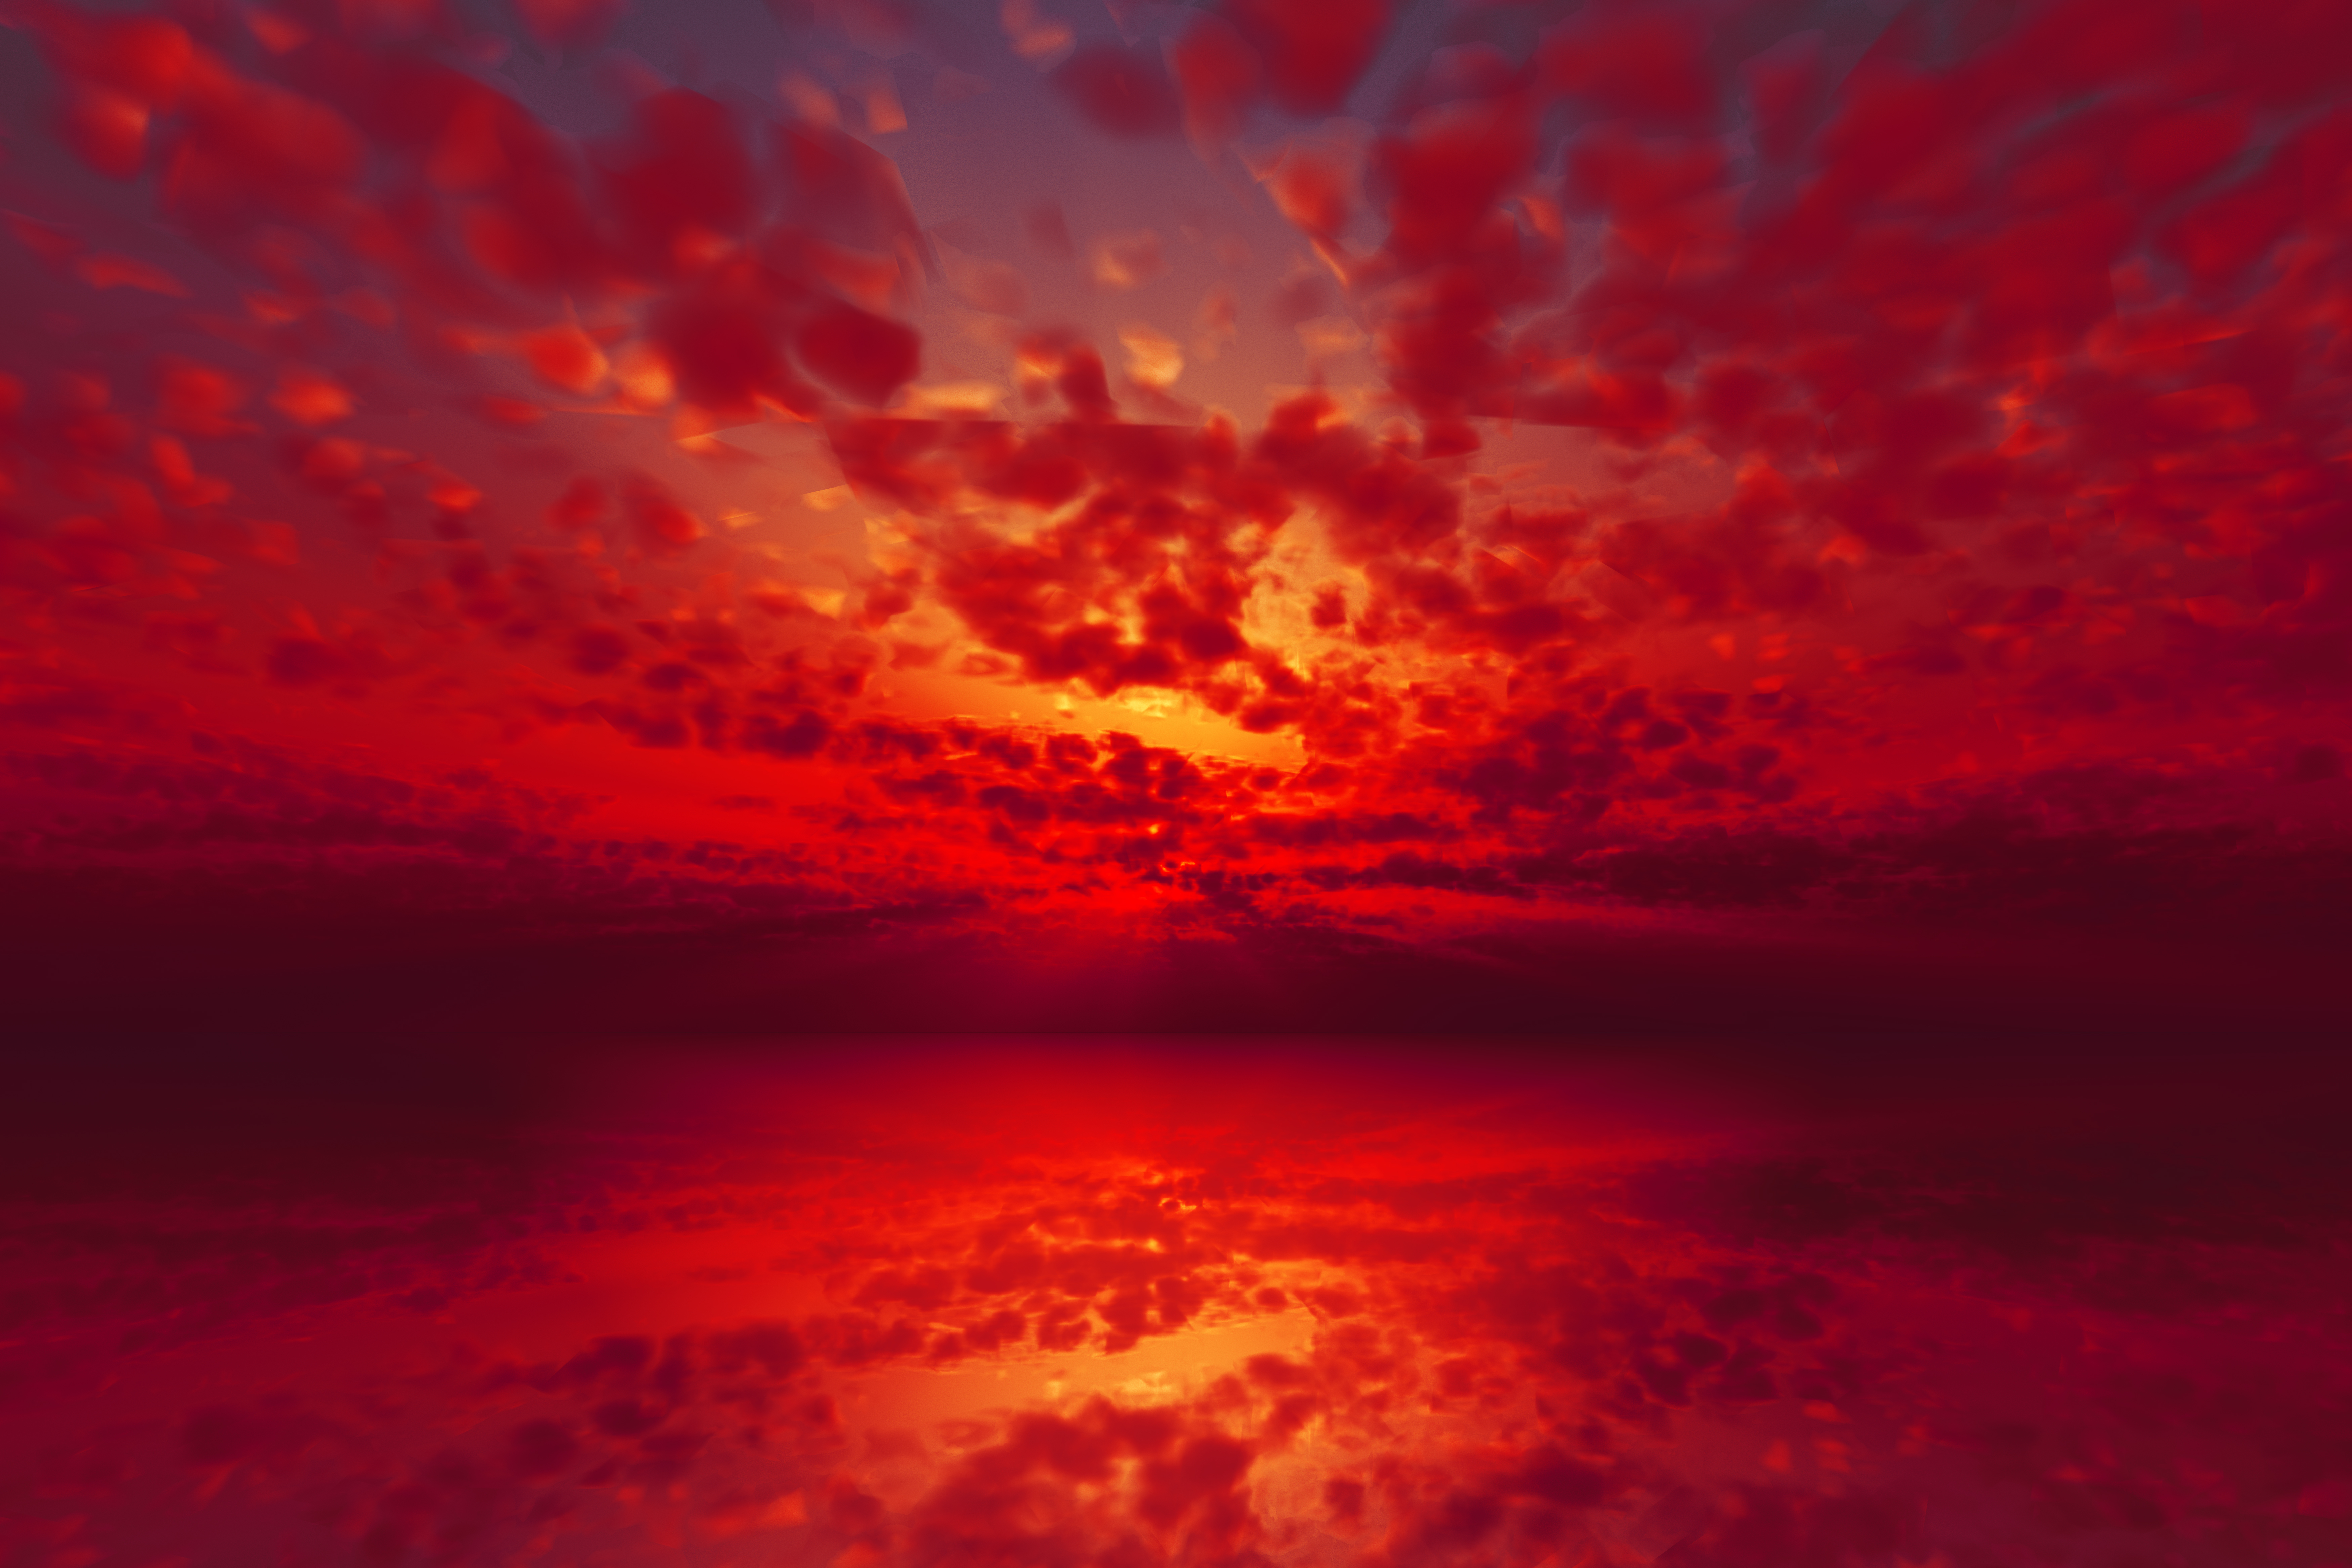 Fiery red and orange sunset with red clouds reflected in the water